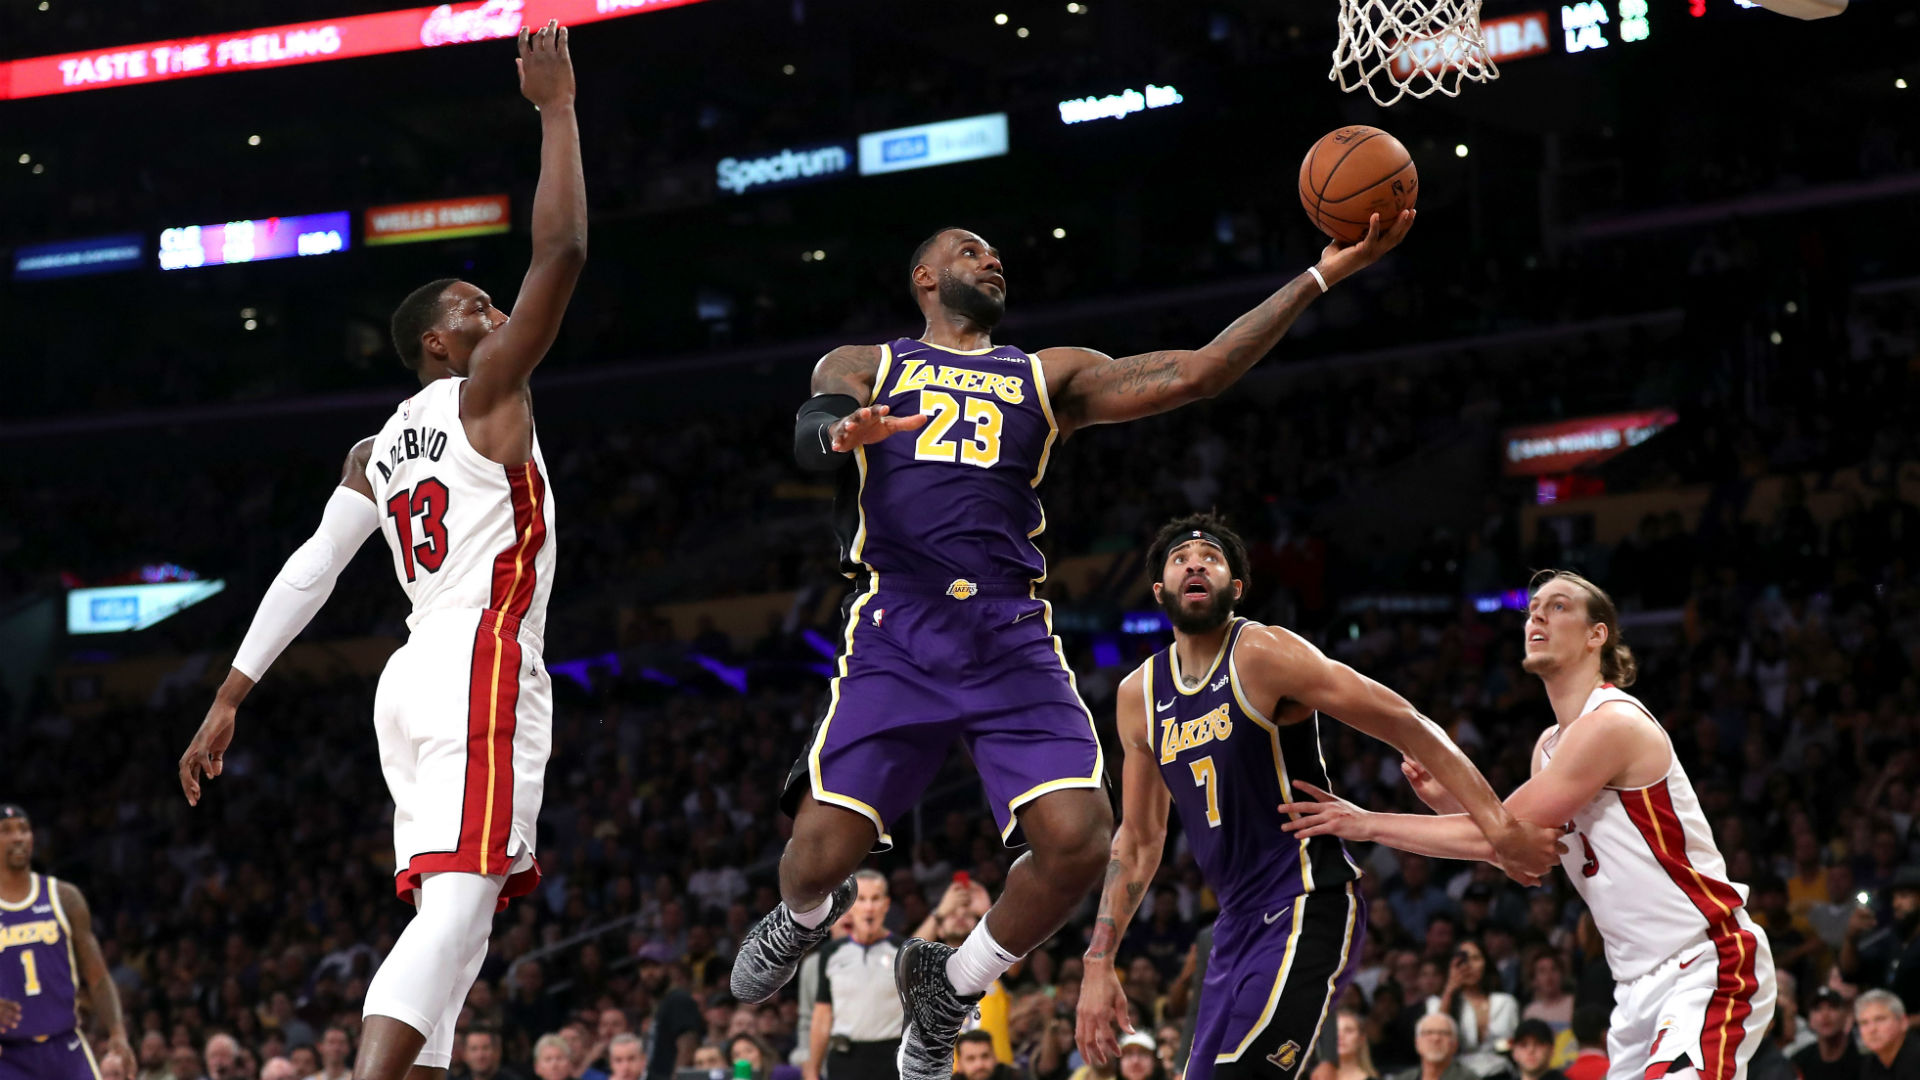 Lakers vs. Heat predictions, picks, schedule for the 2020 NBA Finals